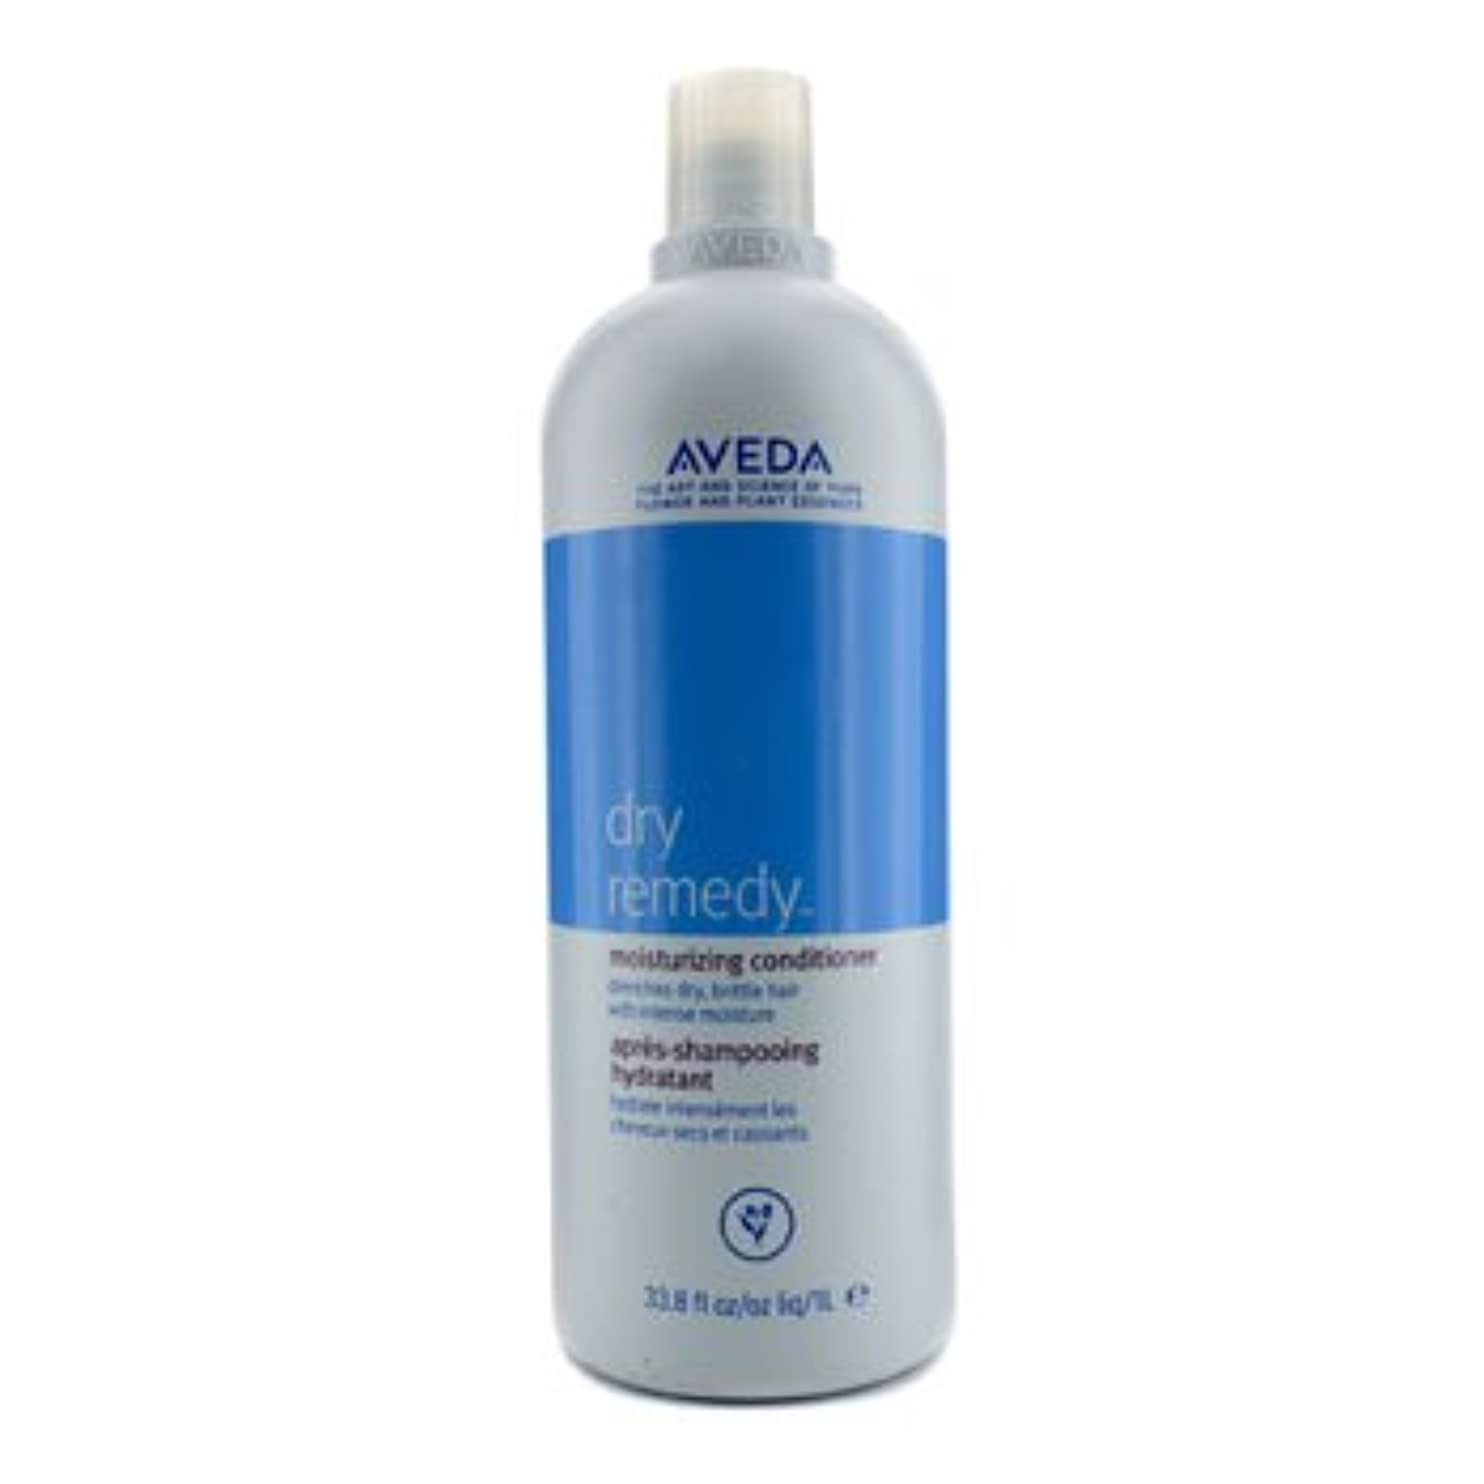 仲人小売召喚する[Aveda] Dry Remedy Moisturizing Conditioner - For Drenches Dry Brittle Hair (New Packaging) 1000ml/33.8oz